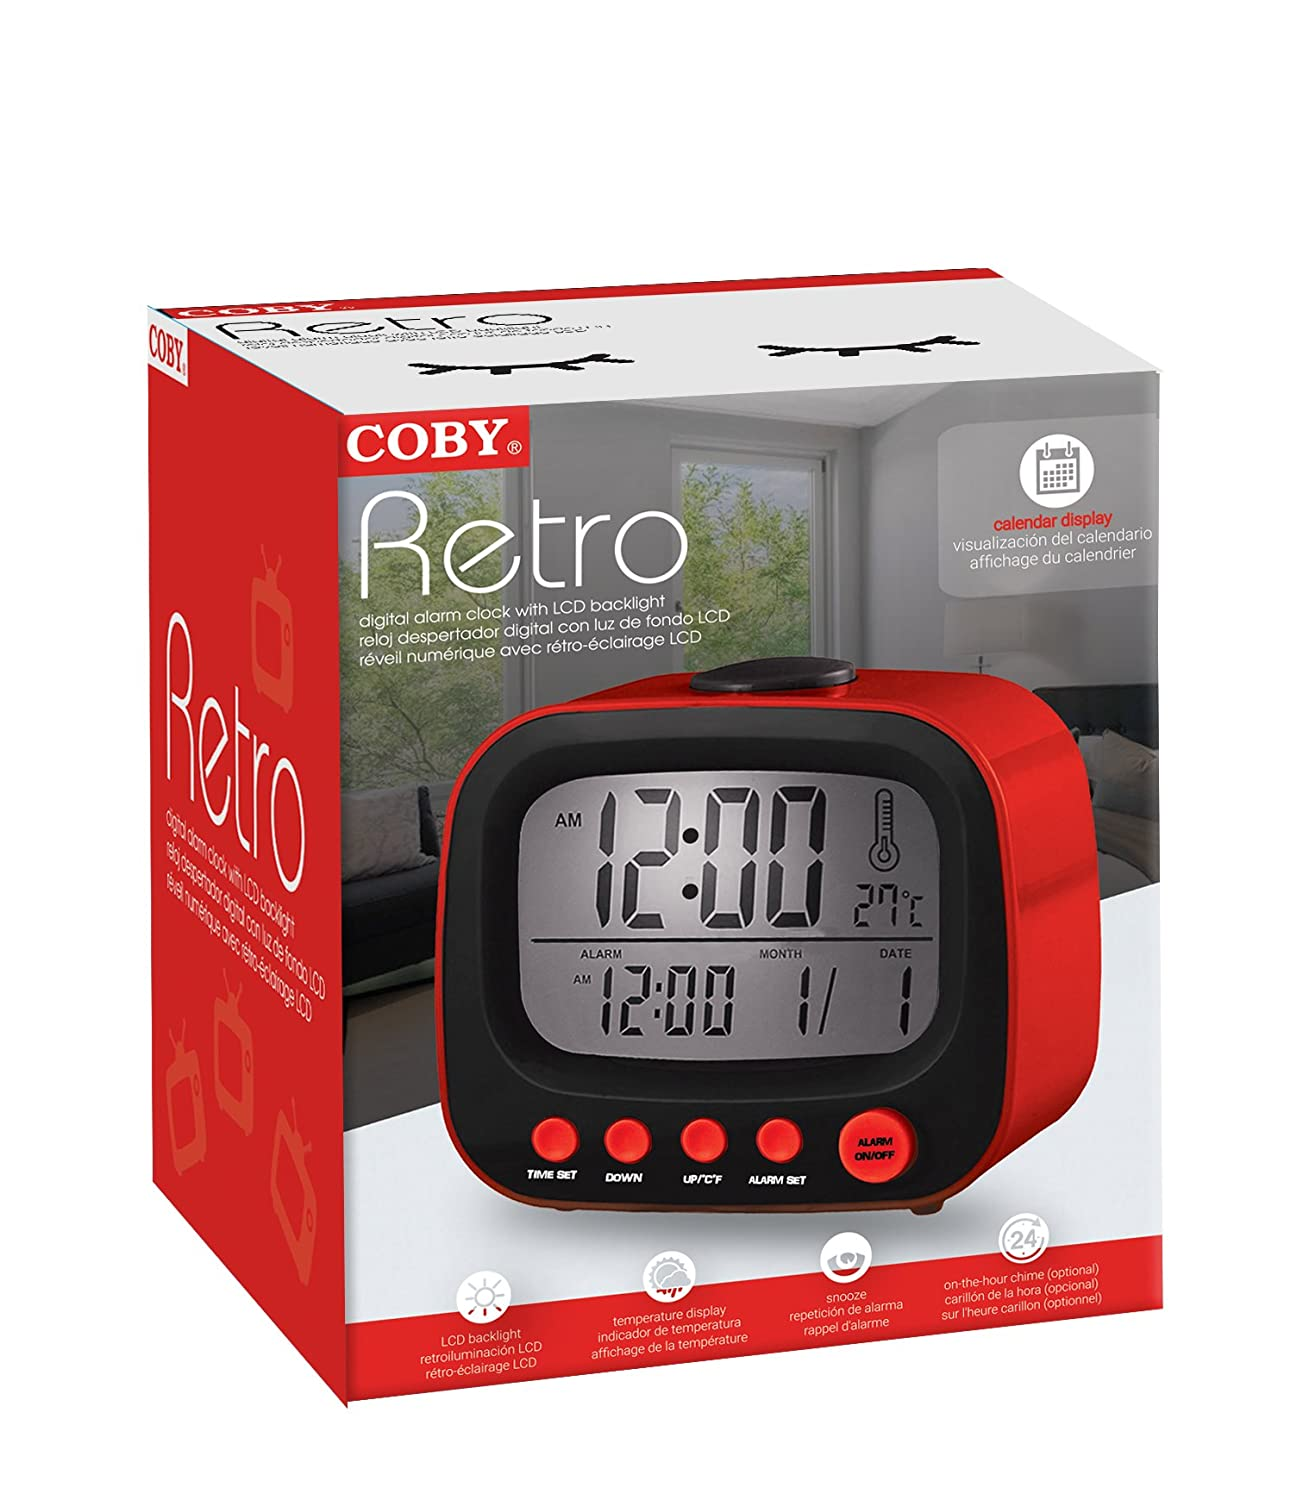 Amazon.com: Coby CBC-52-RED Retro LCD Alarm Clock (Red): Home Audio & Theater